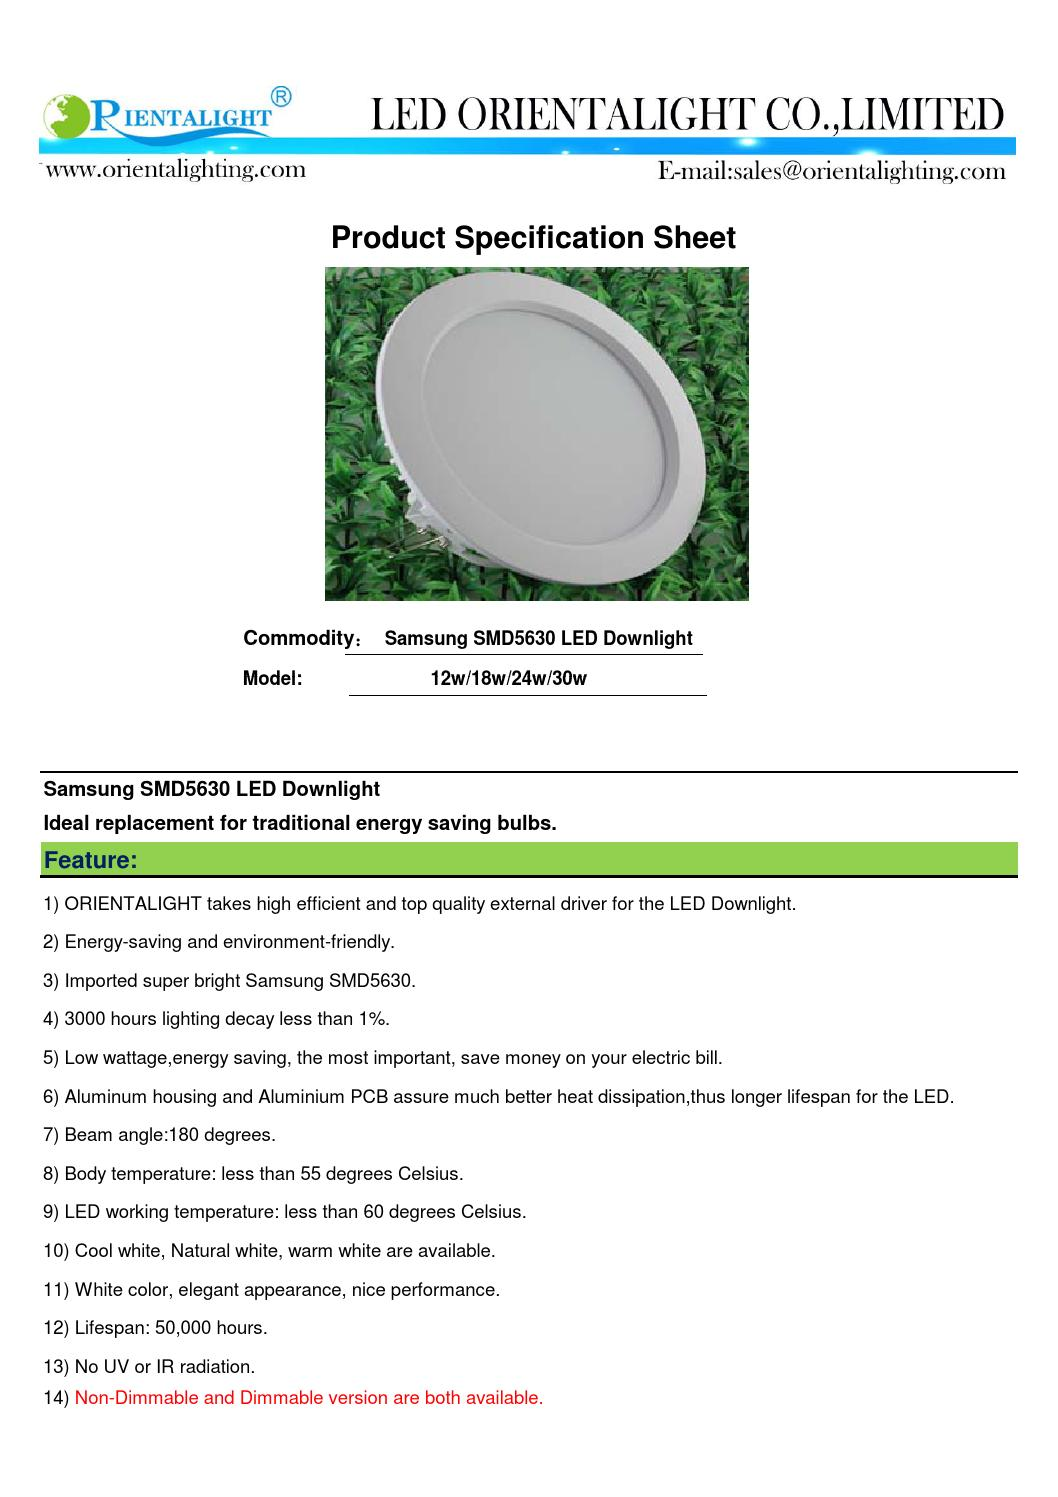 Specification sheet of new led downlight by LED Orientalight